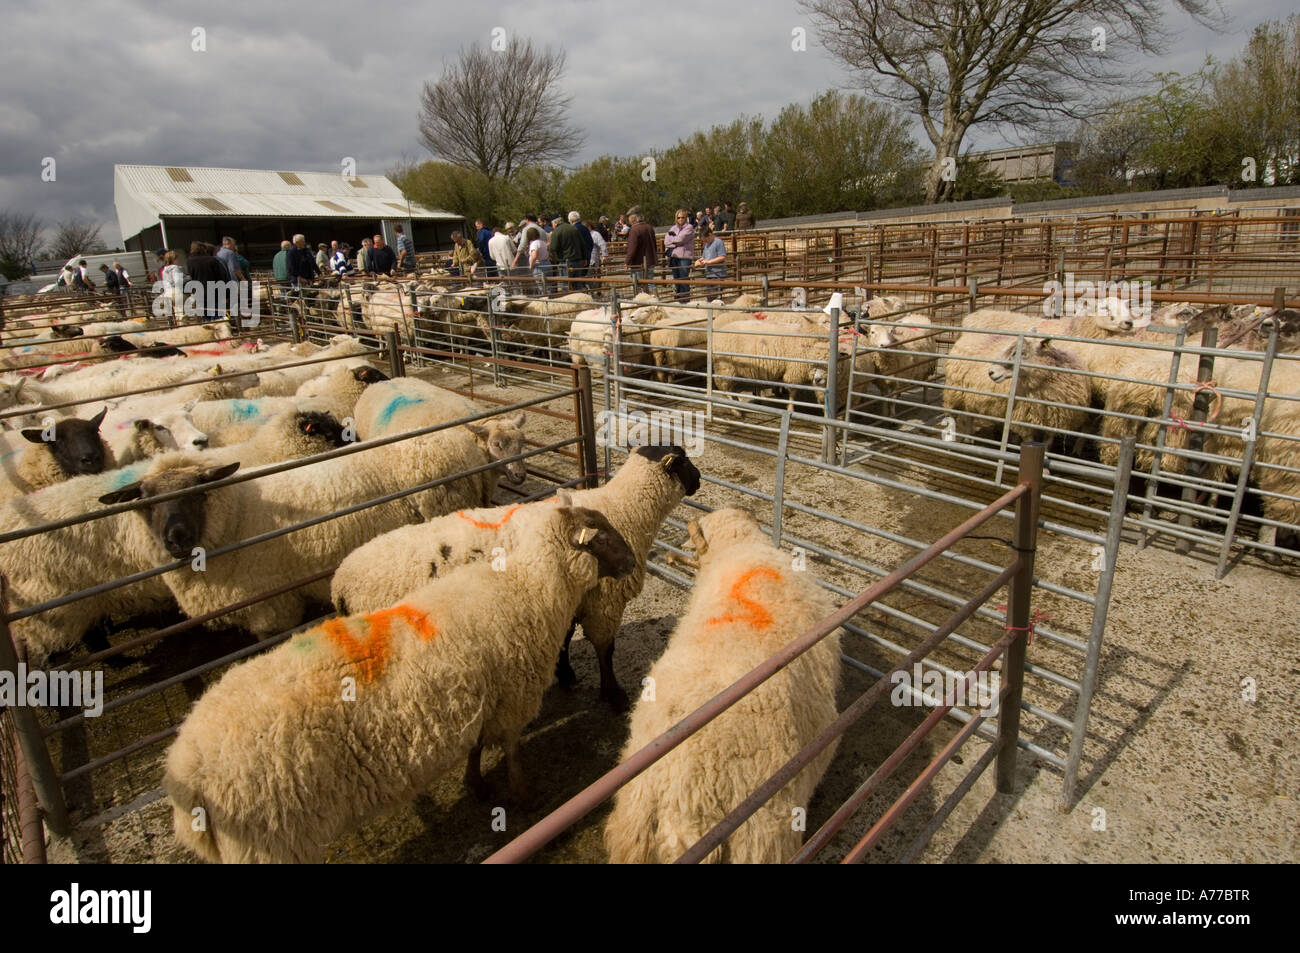 Sheep pens at at Crymych sheep market Pembrokeshire wales cymru UK - Stock  Image bdd10b427ca7